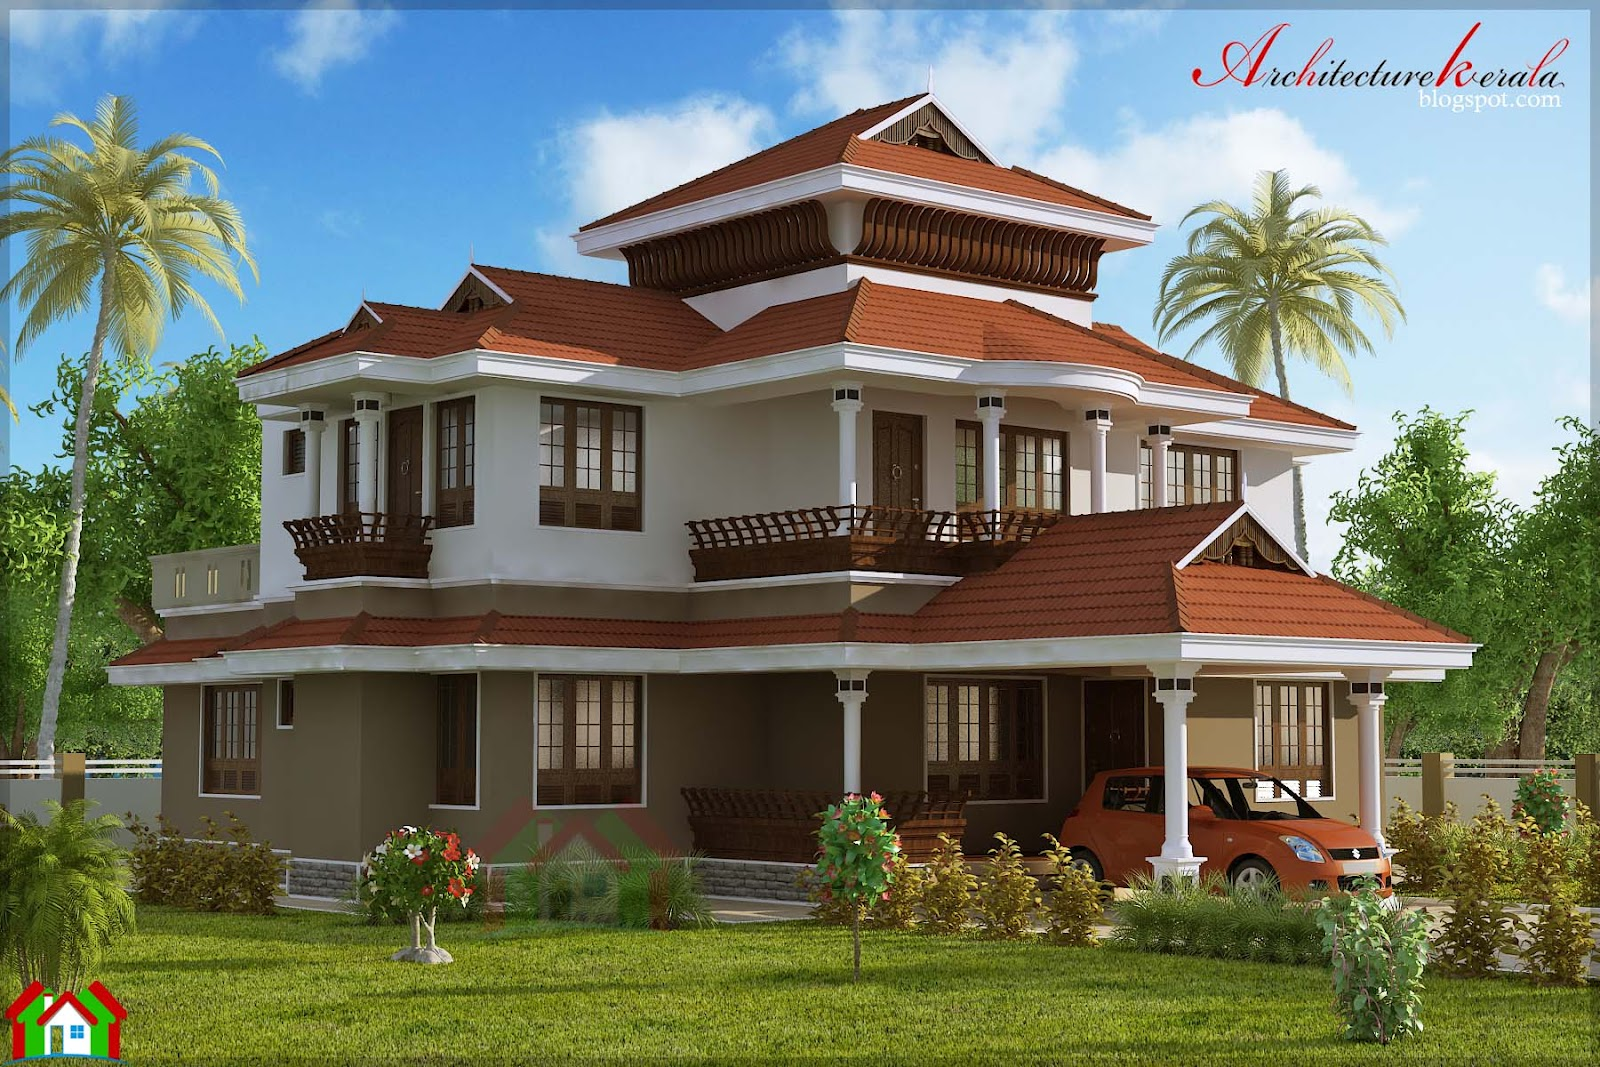 4 bed room traditional style house architecture kerala for Traditional house style